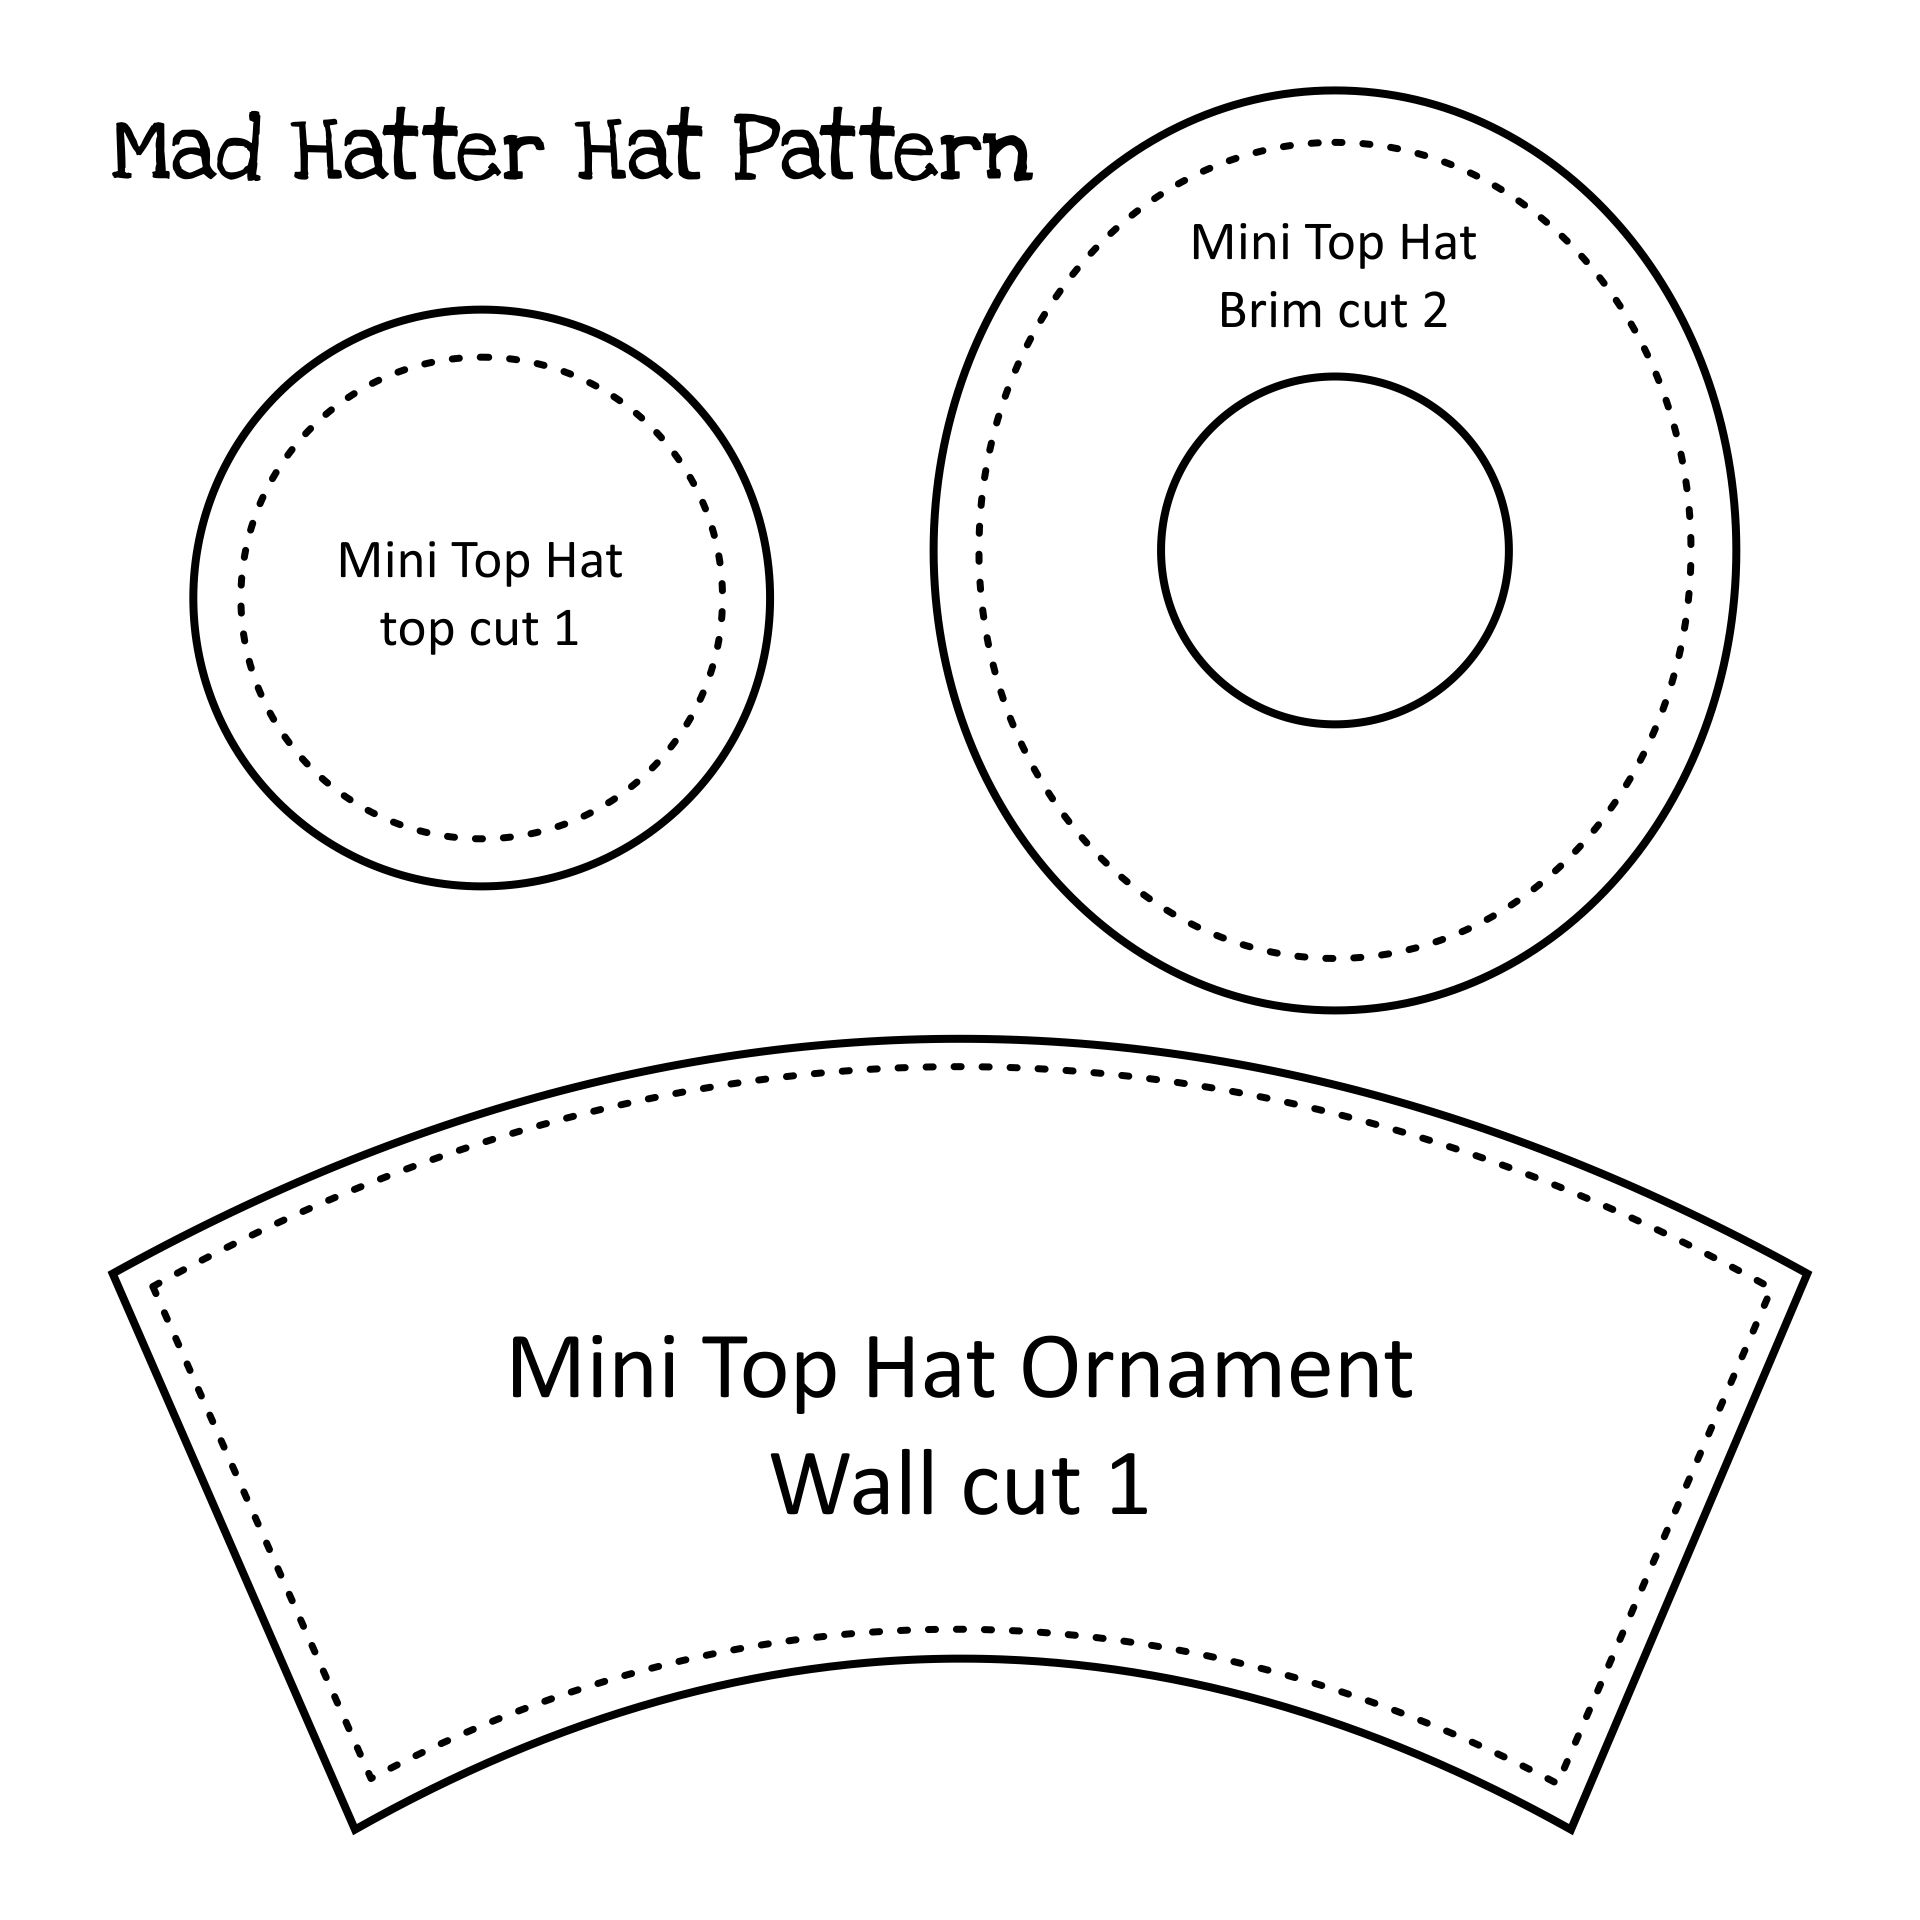 Mad Hatter Top Hat Pattern